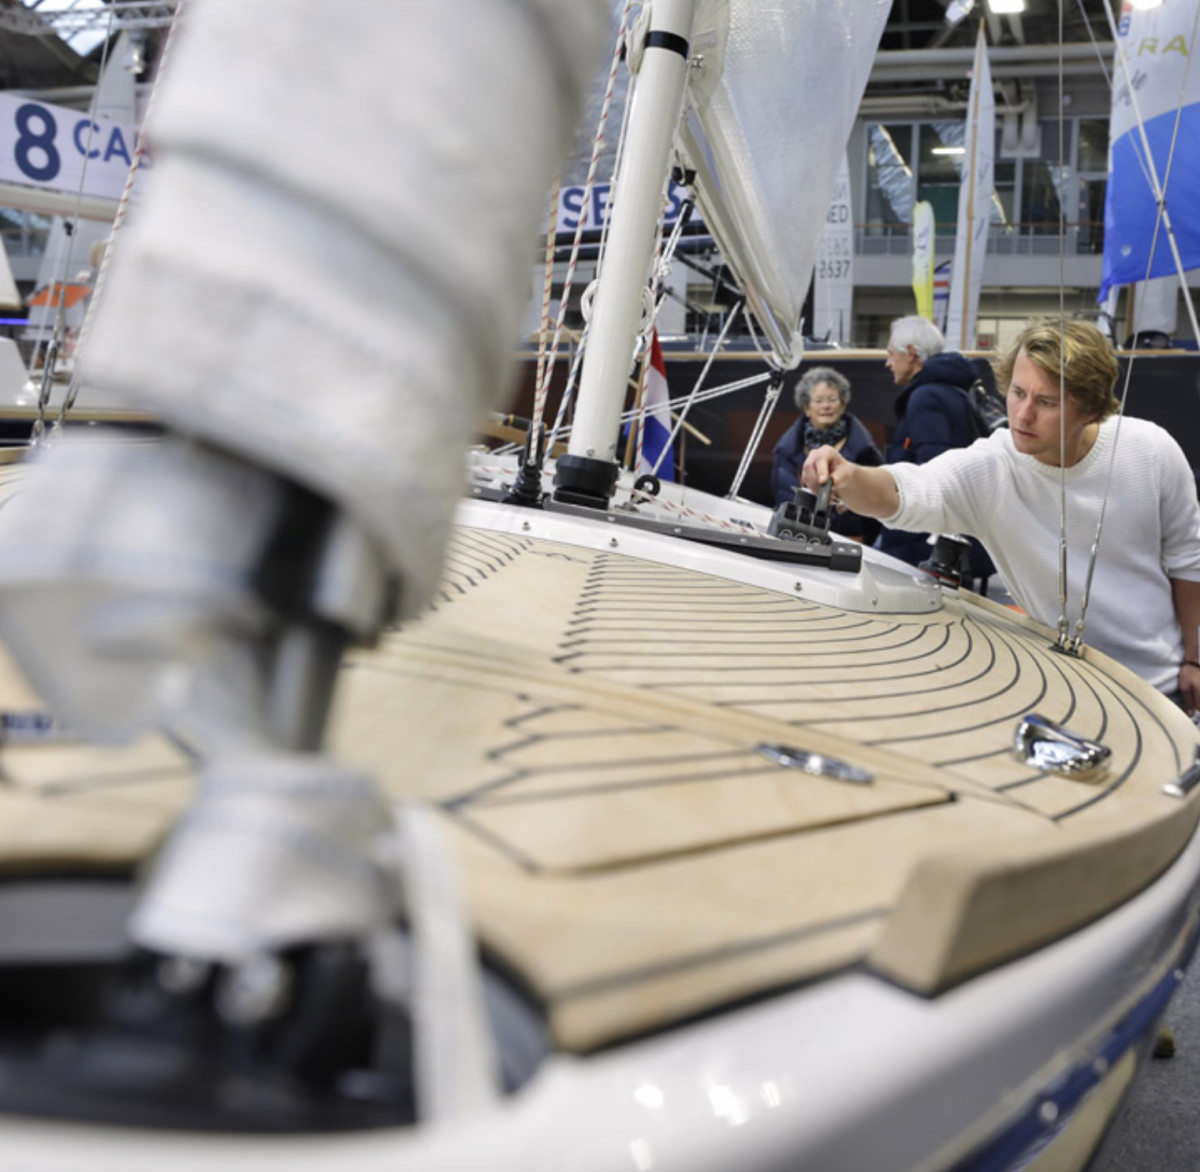 The HISWA Amsterdam Boat Show, which kicked off Wednesday and was slated to take place until Sunday at RAI Amsterdam, was cancelled early. Photo from HISWA website.